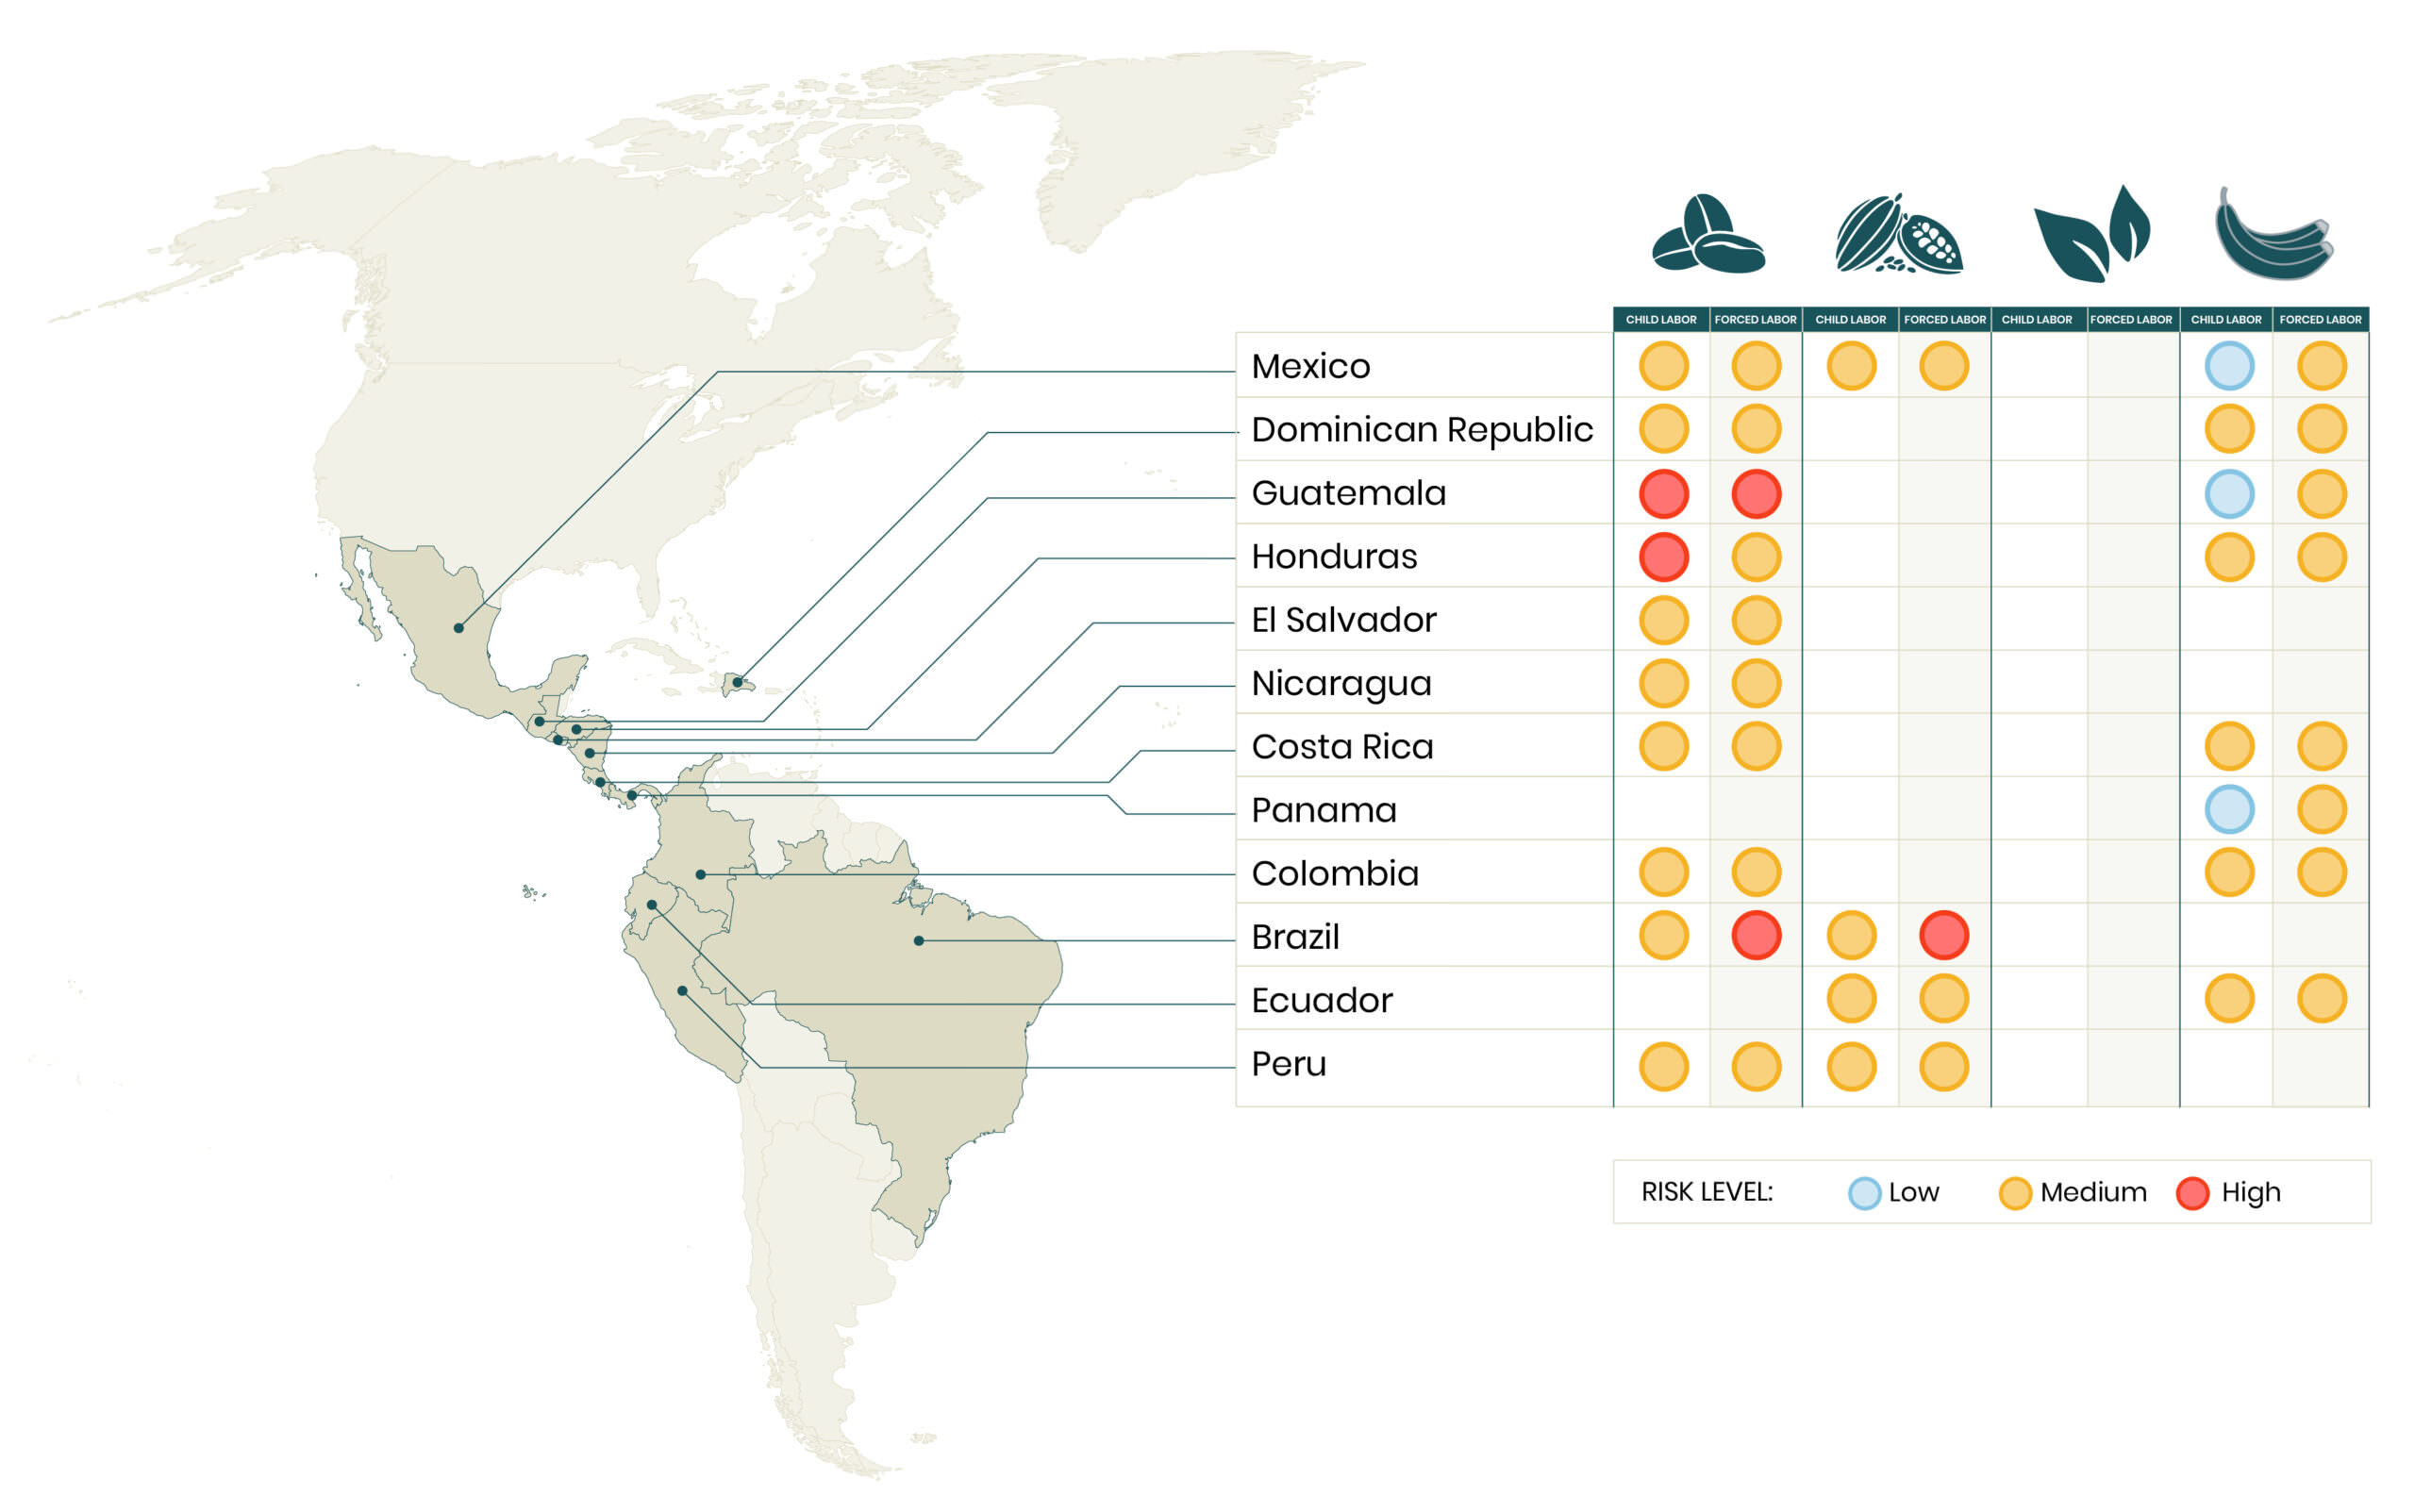 Risk map for child labor and forced labor in Latin America